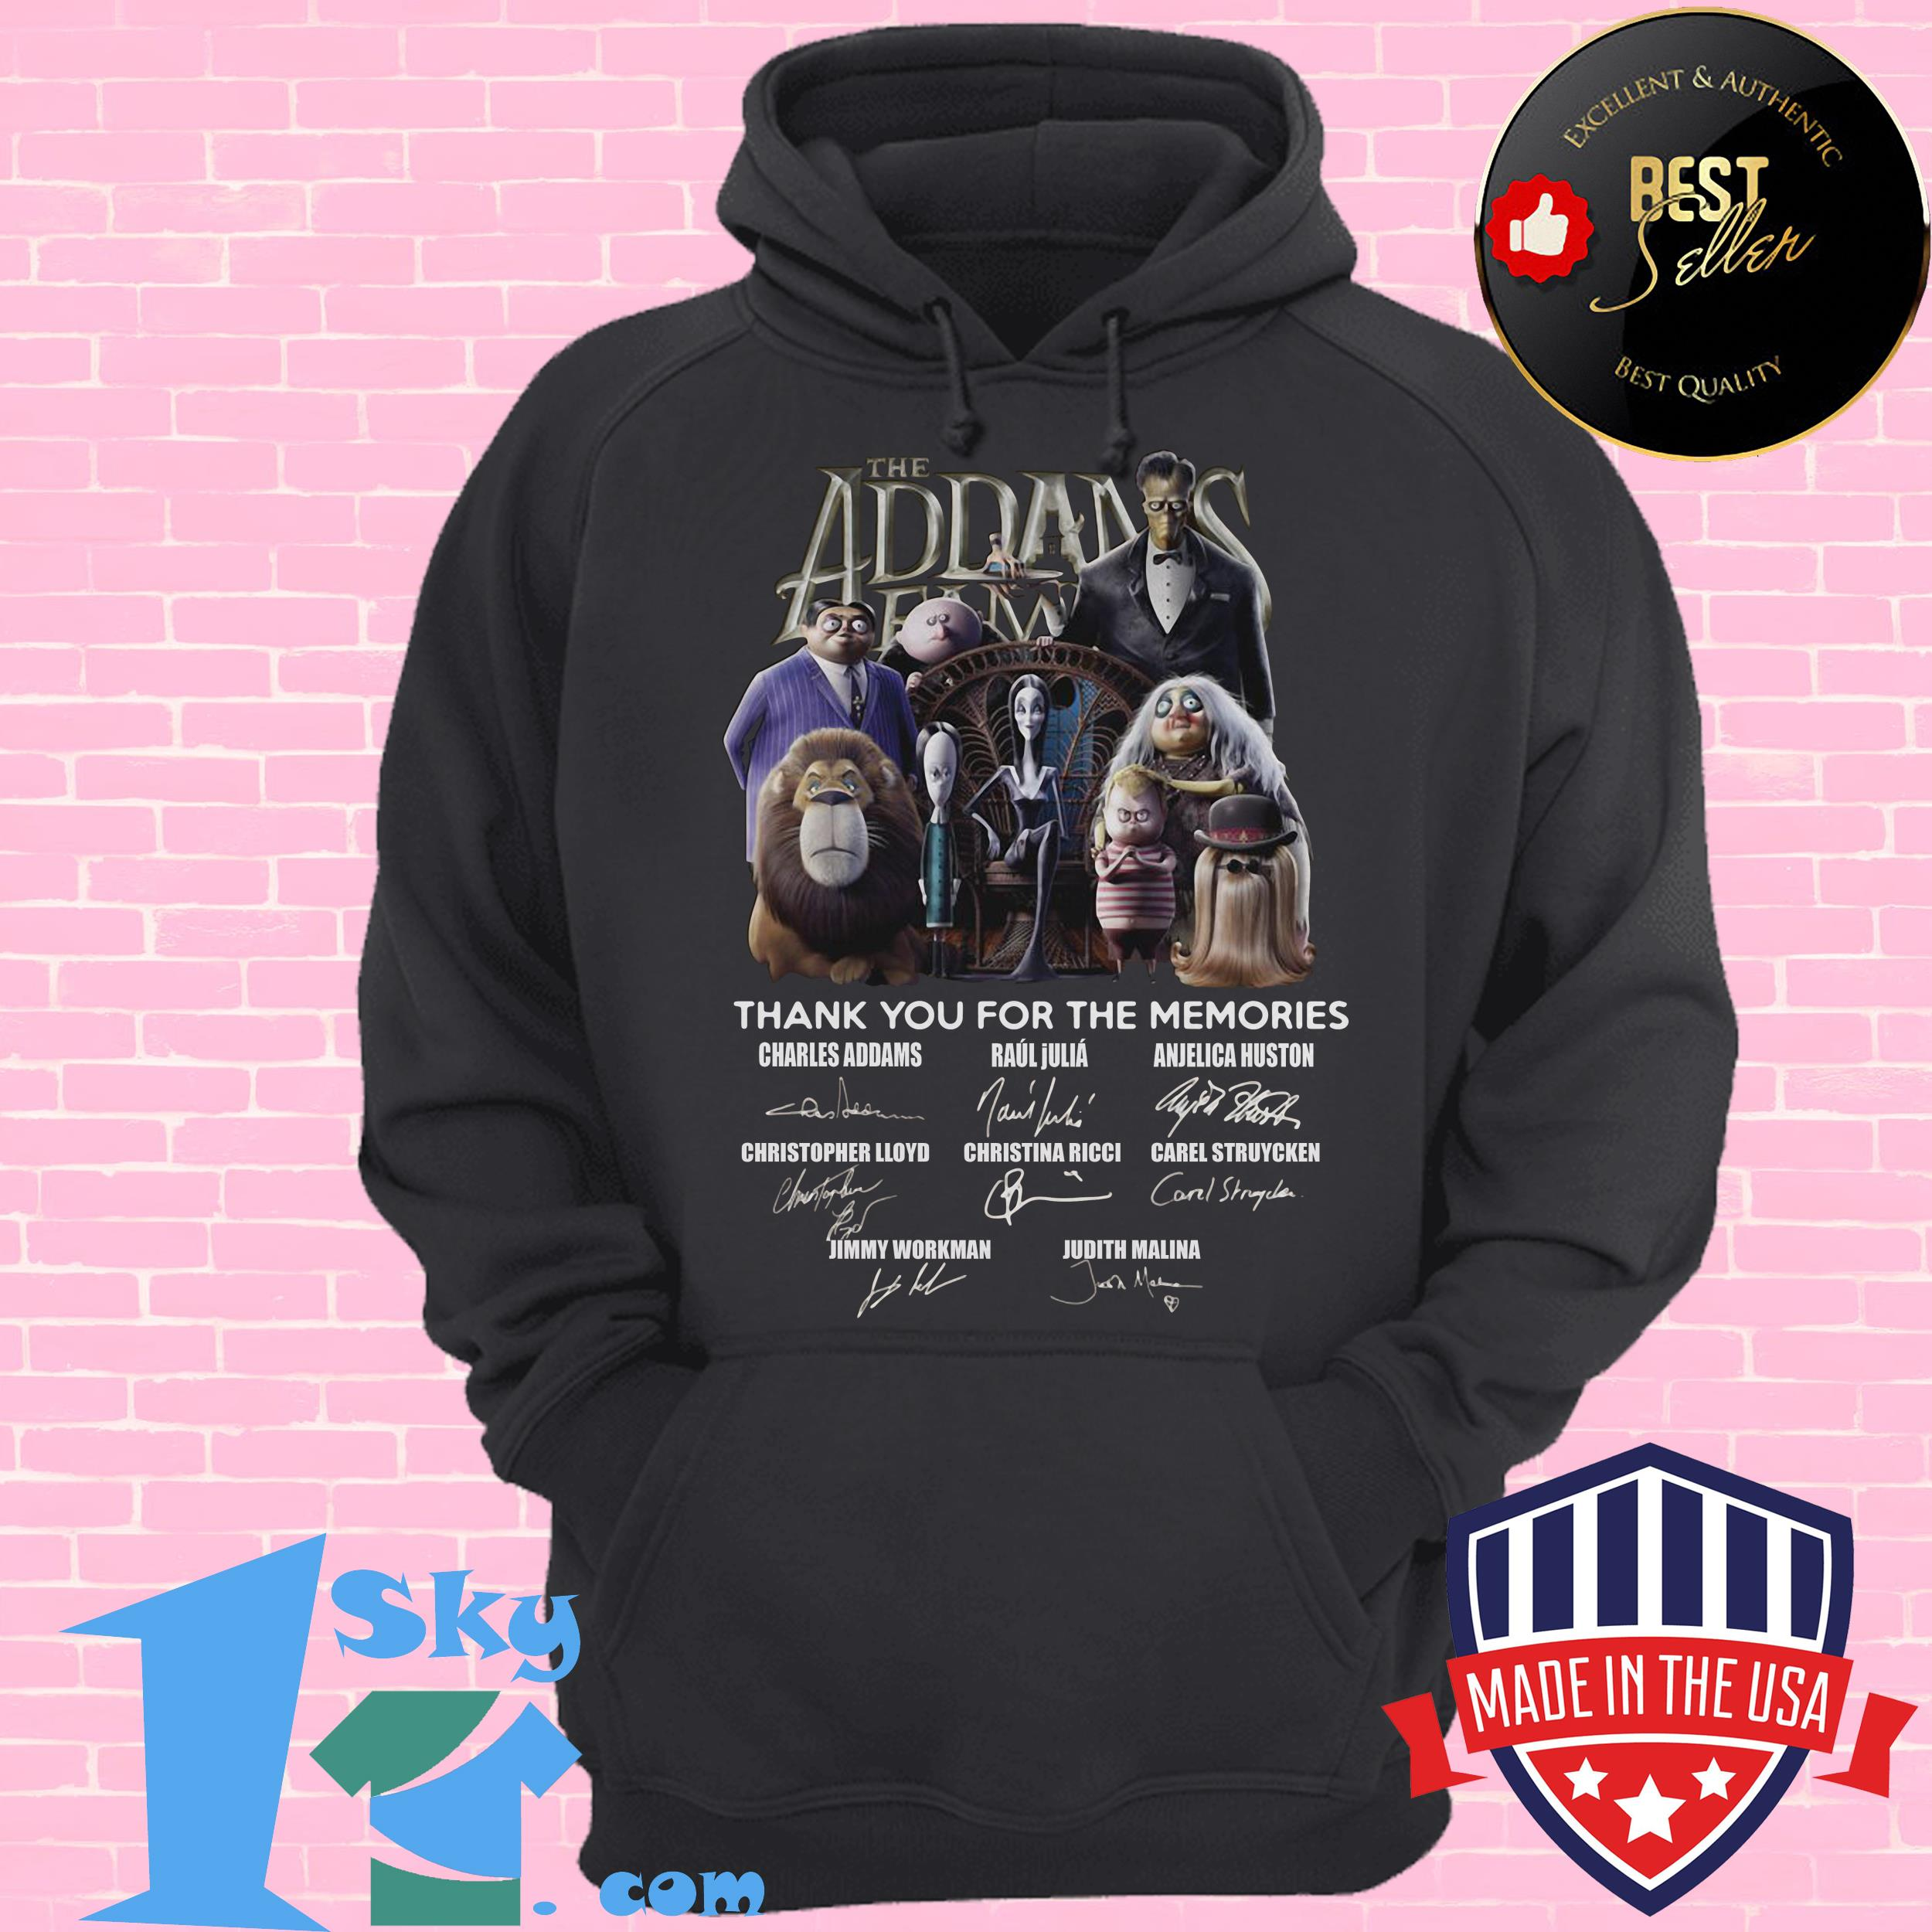 the addams family thank you for the memories signature hoodie - The Addams Family Thank You For The Memories Signature Shirt